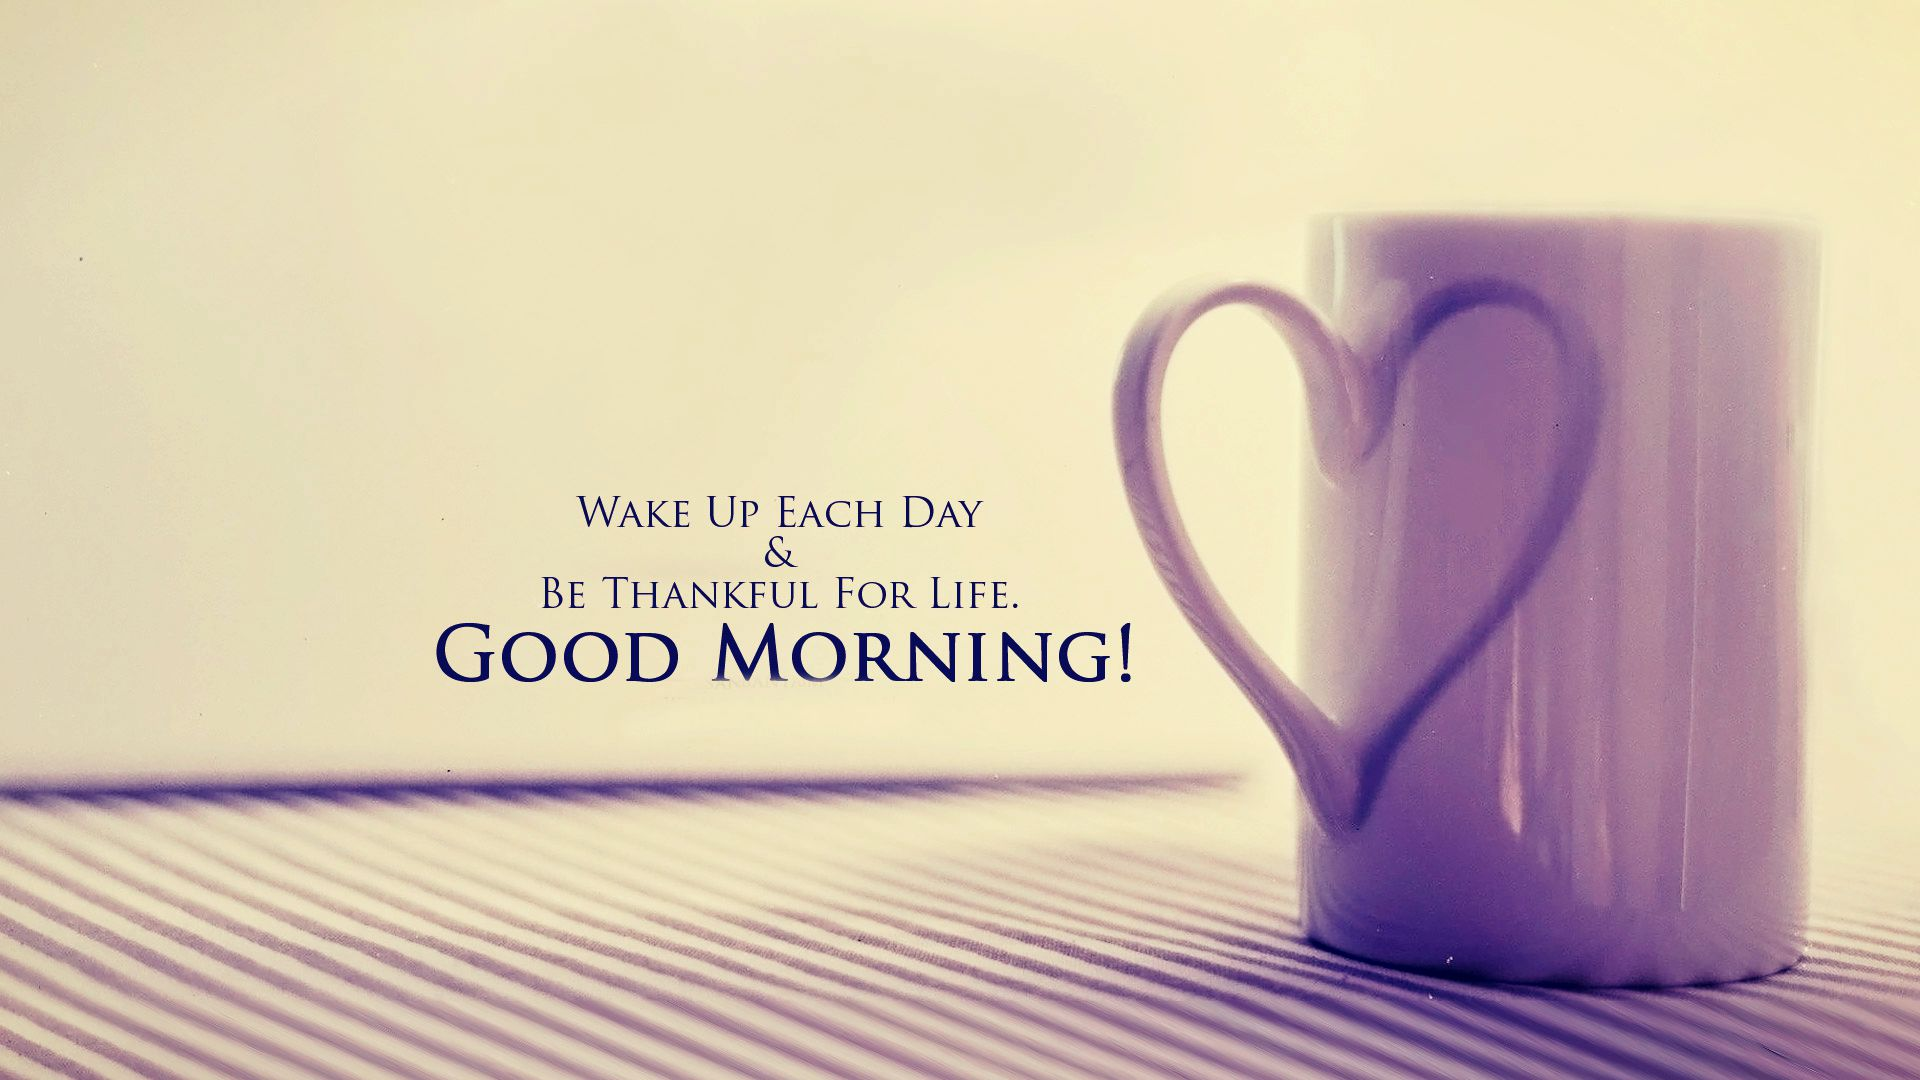 Good Morning Love Wallpaper For Her : 28 Best Good Morning Quotes